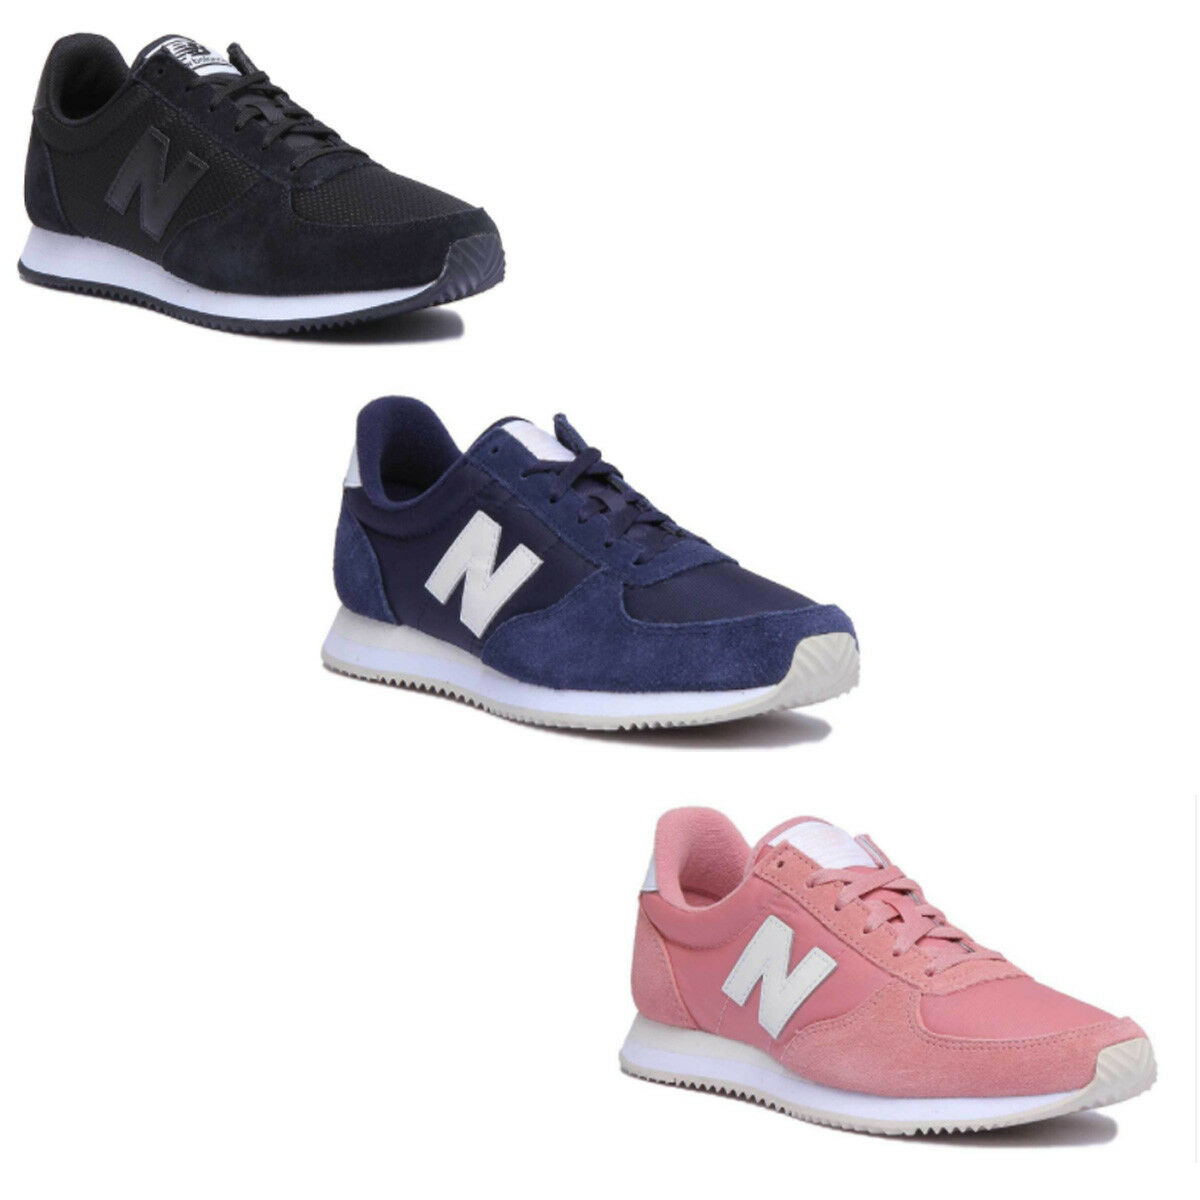 New Balance WL220RA Damens Other Fabric Pink Trainers Größe UK 3 - 8